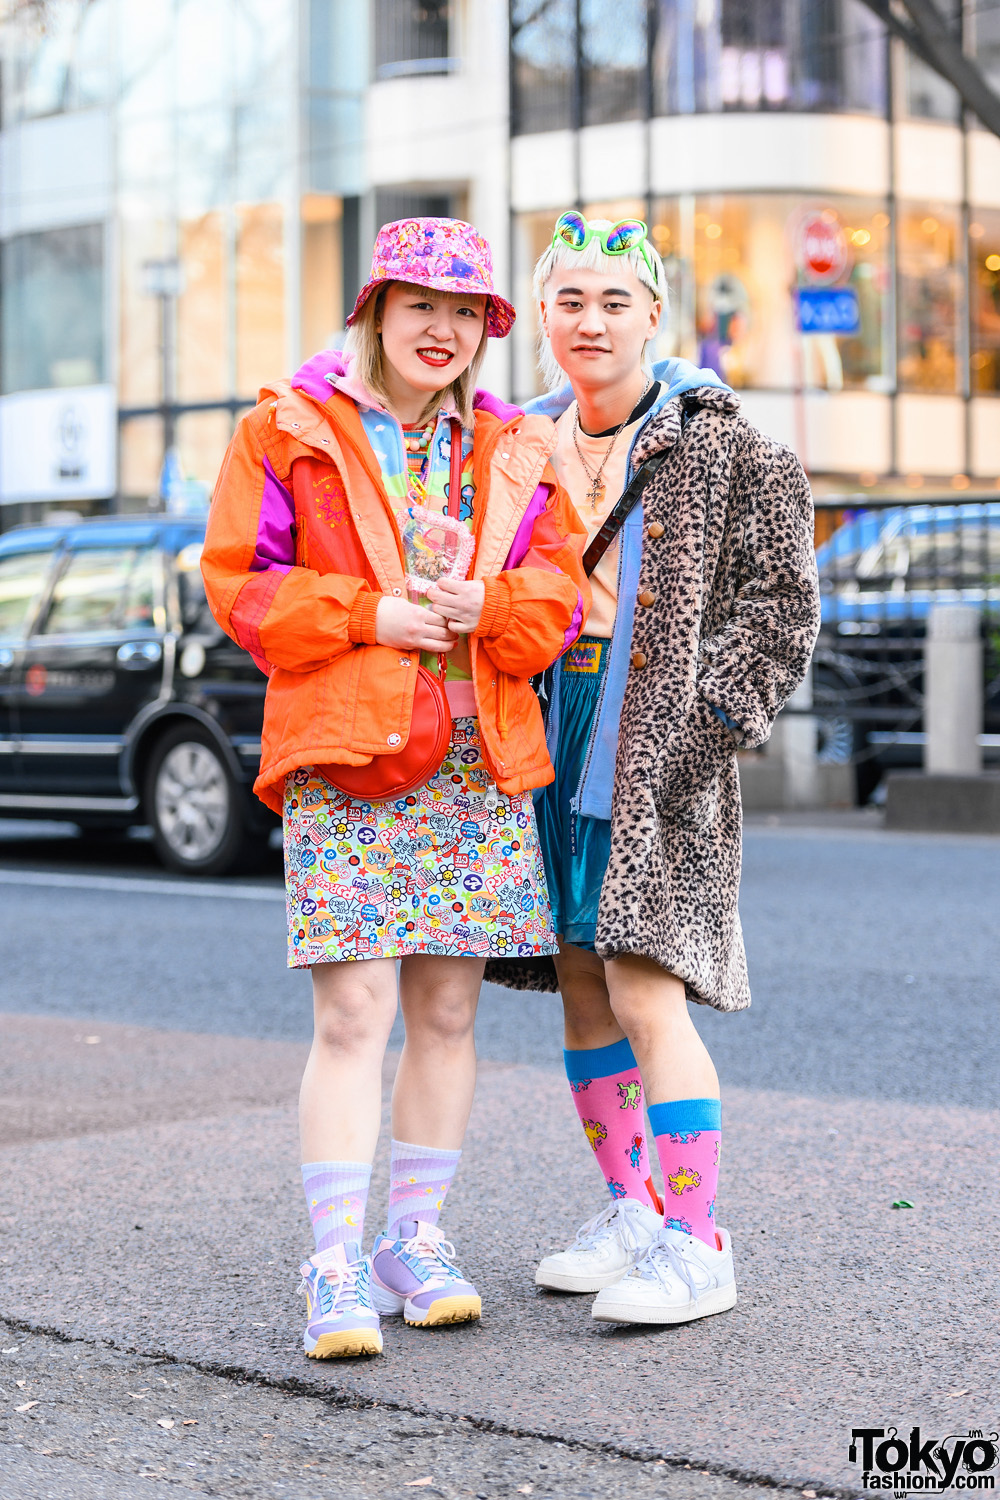 Tokyo Vintage Shop Staffers in Colorful  Styles w/ Kawaii Bucket Hat, Alien Sunglasses, Troll Necklace, Neon Moon, MCM, Courreges, UNIF, & Galaxxxy